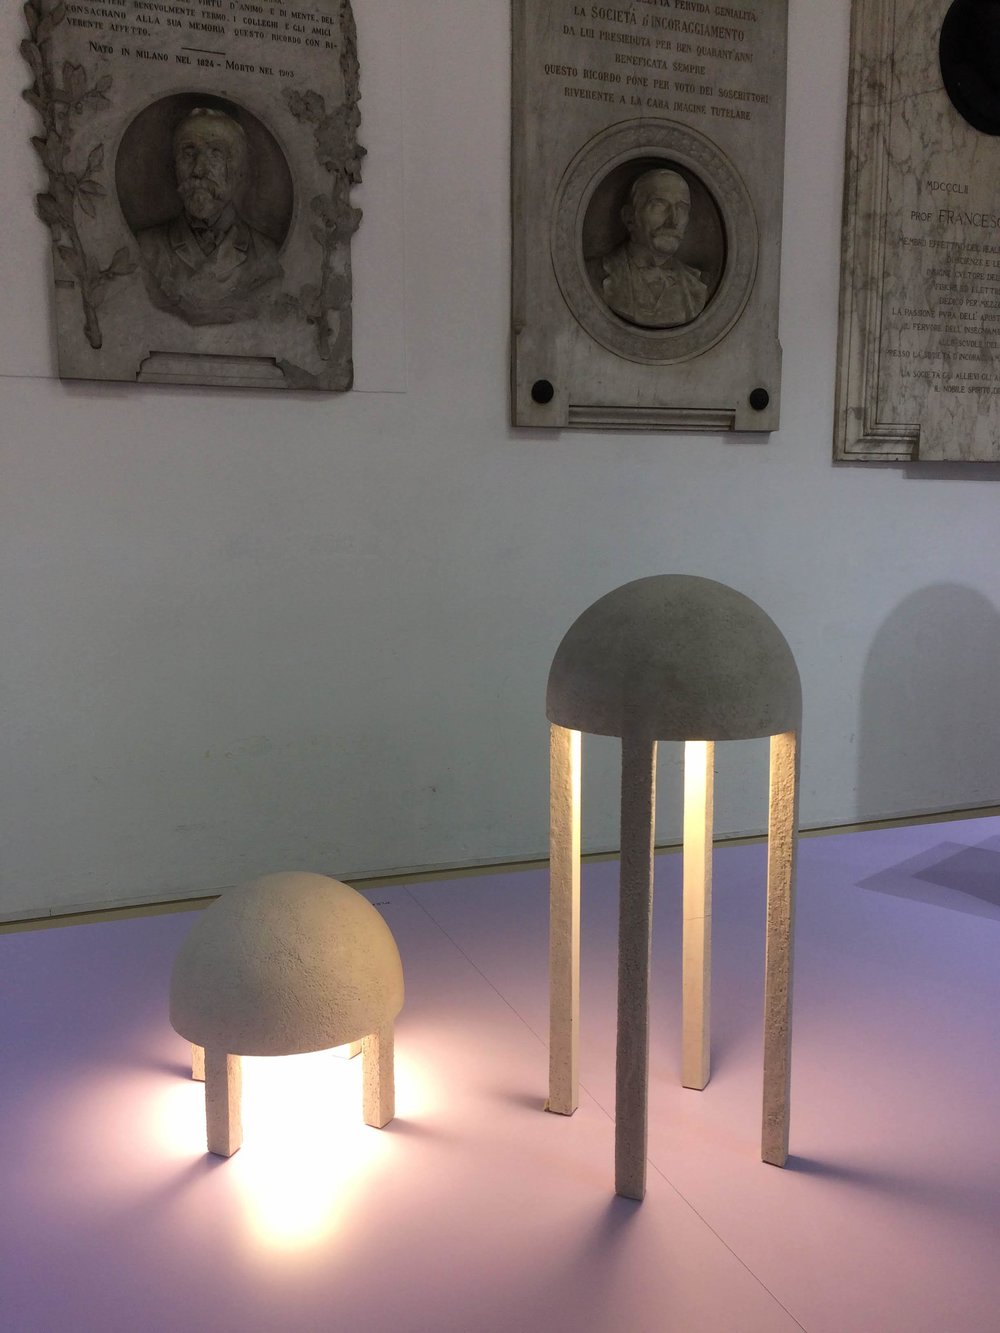 Jellyfish lamp by Emmanuelle Simon. THEOREME EDITIONS